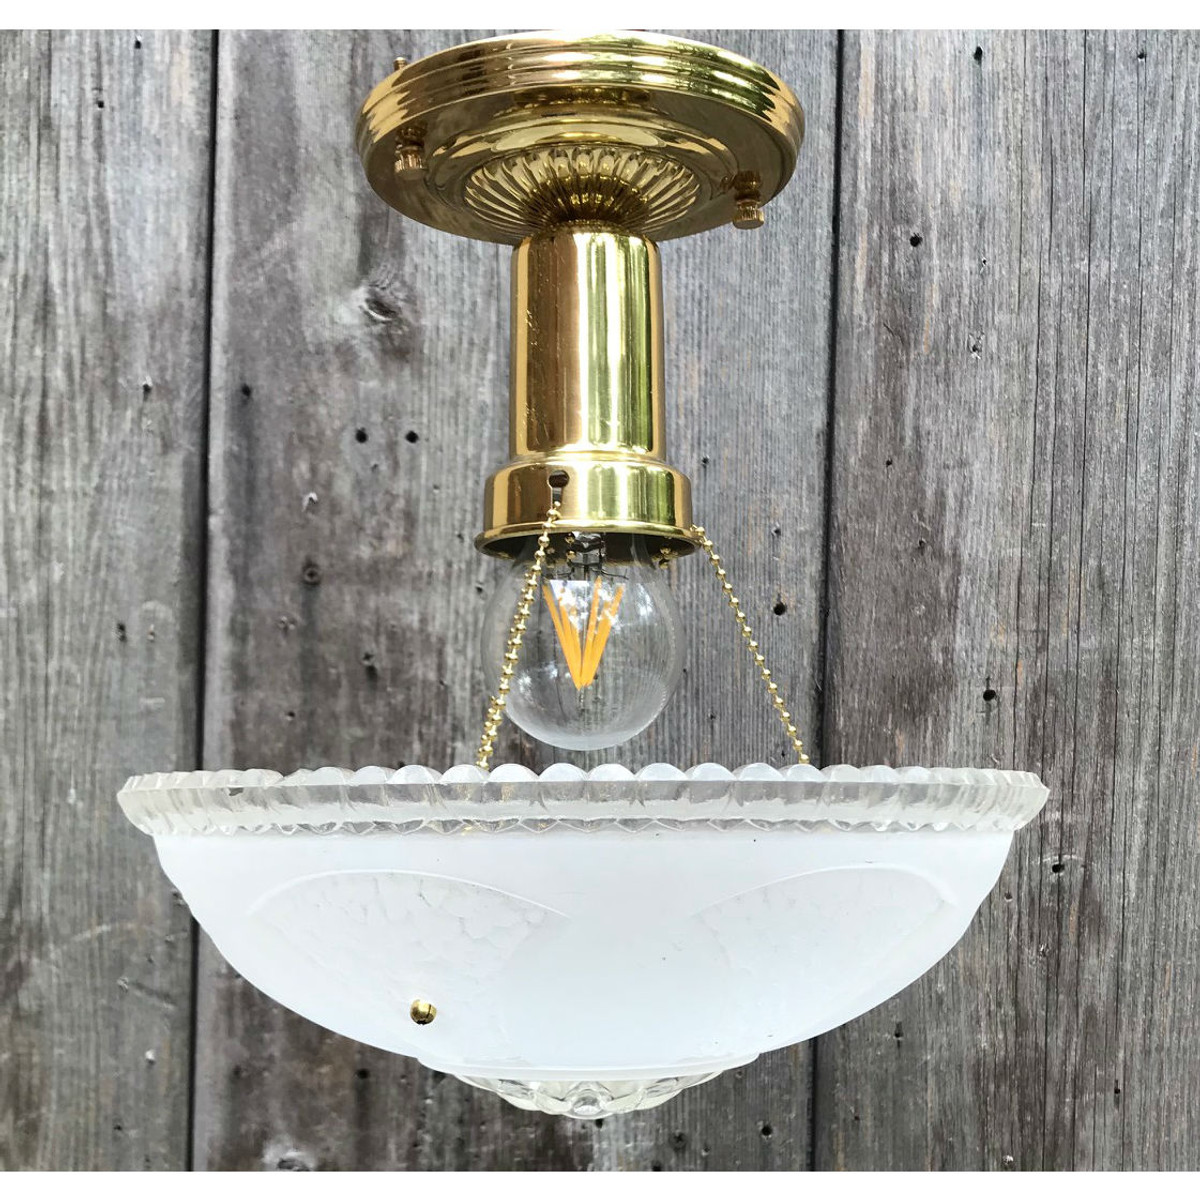 L19159 - Art Moderne Ceiling Light Fixture With Antique Bowl Shade